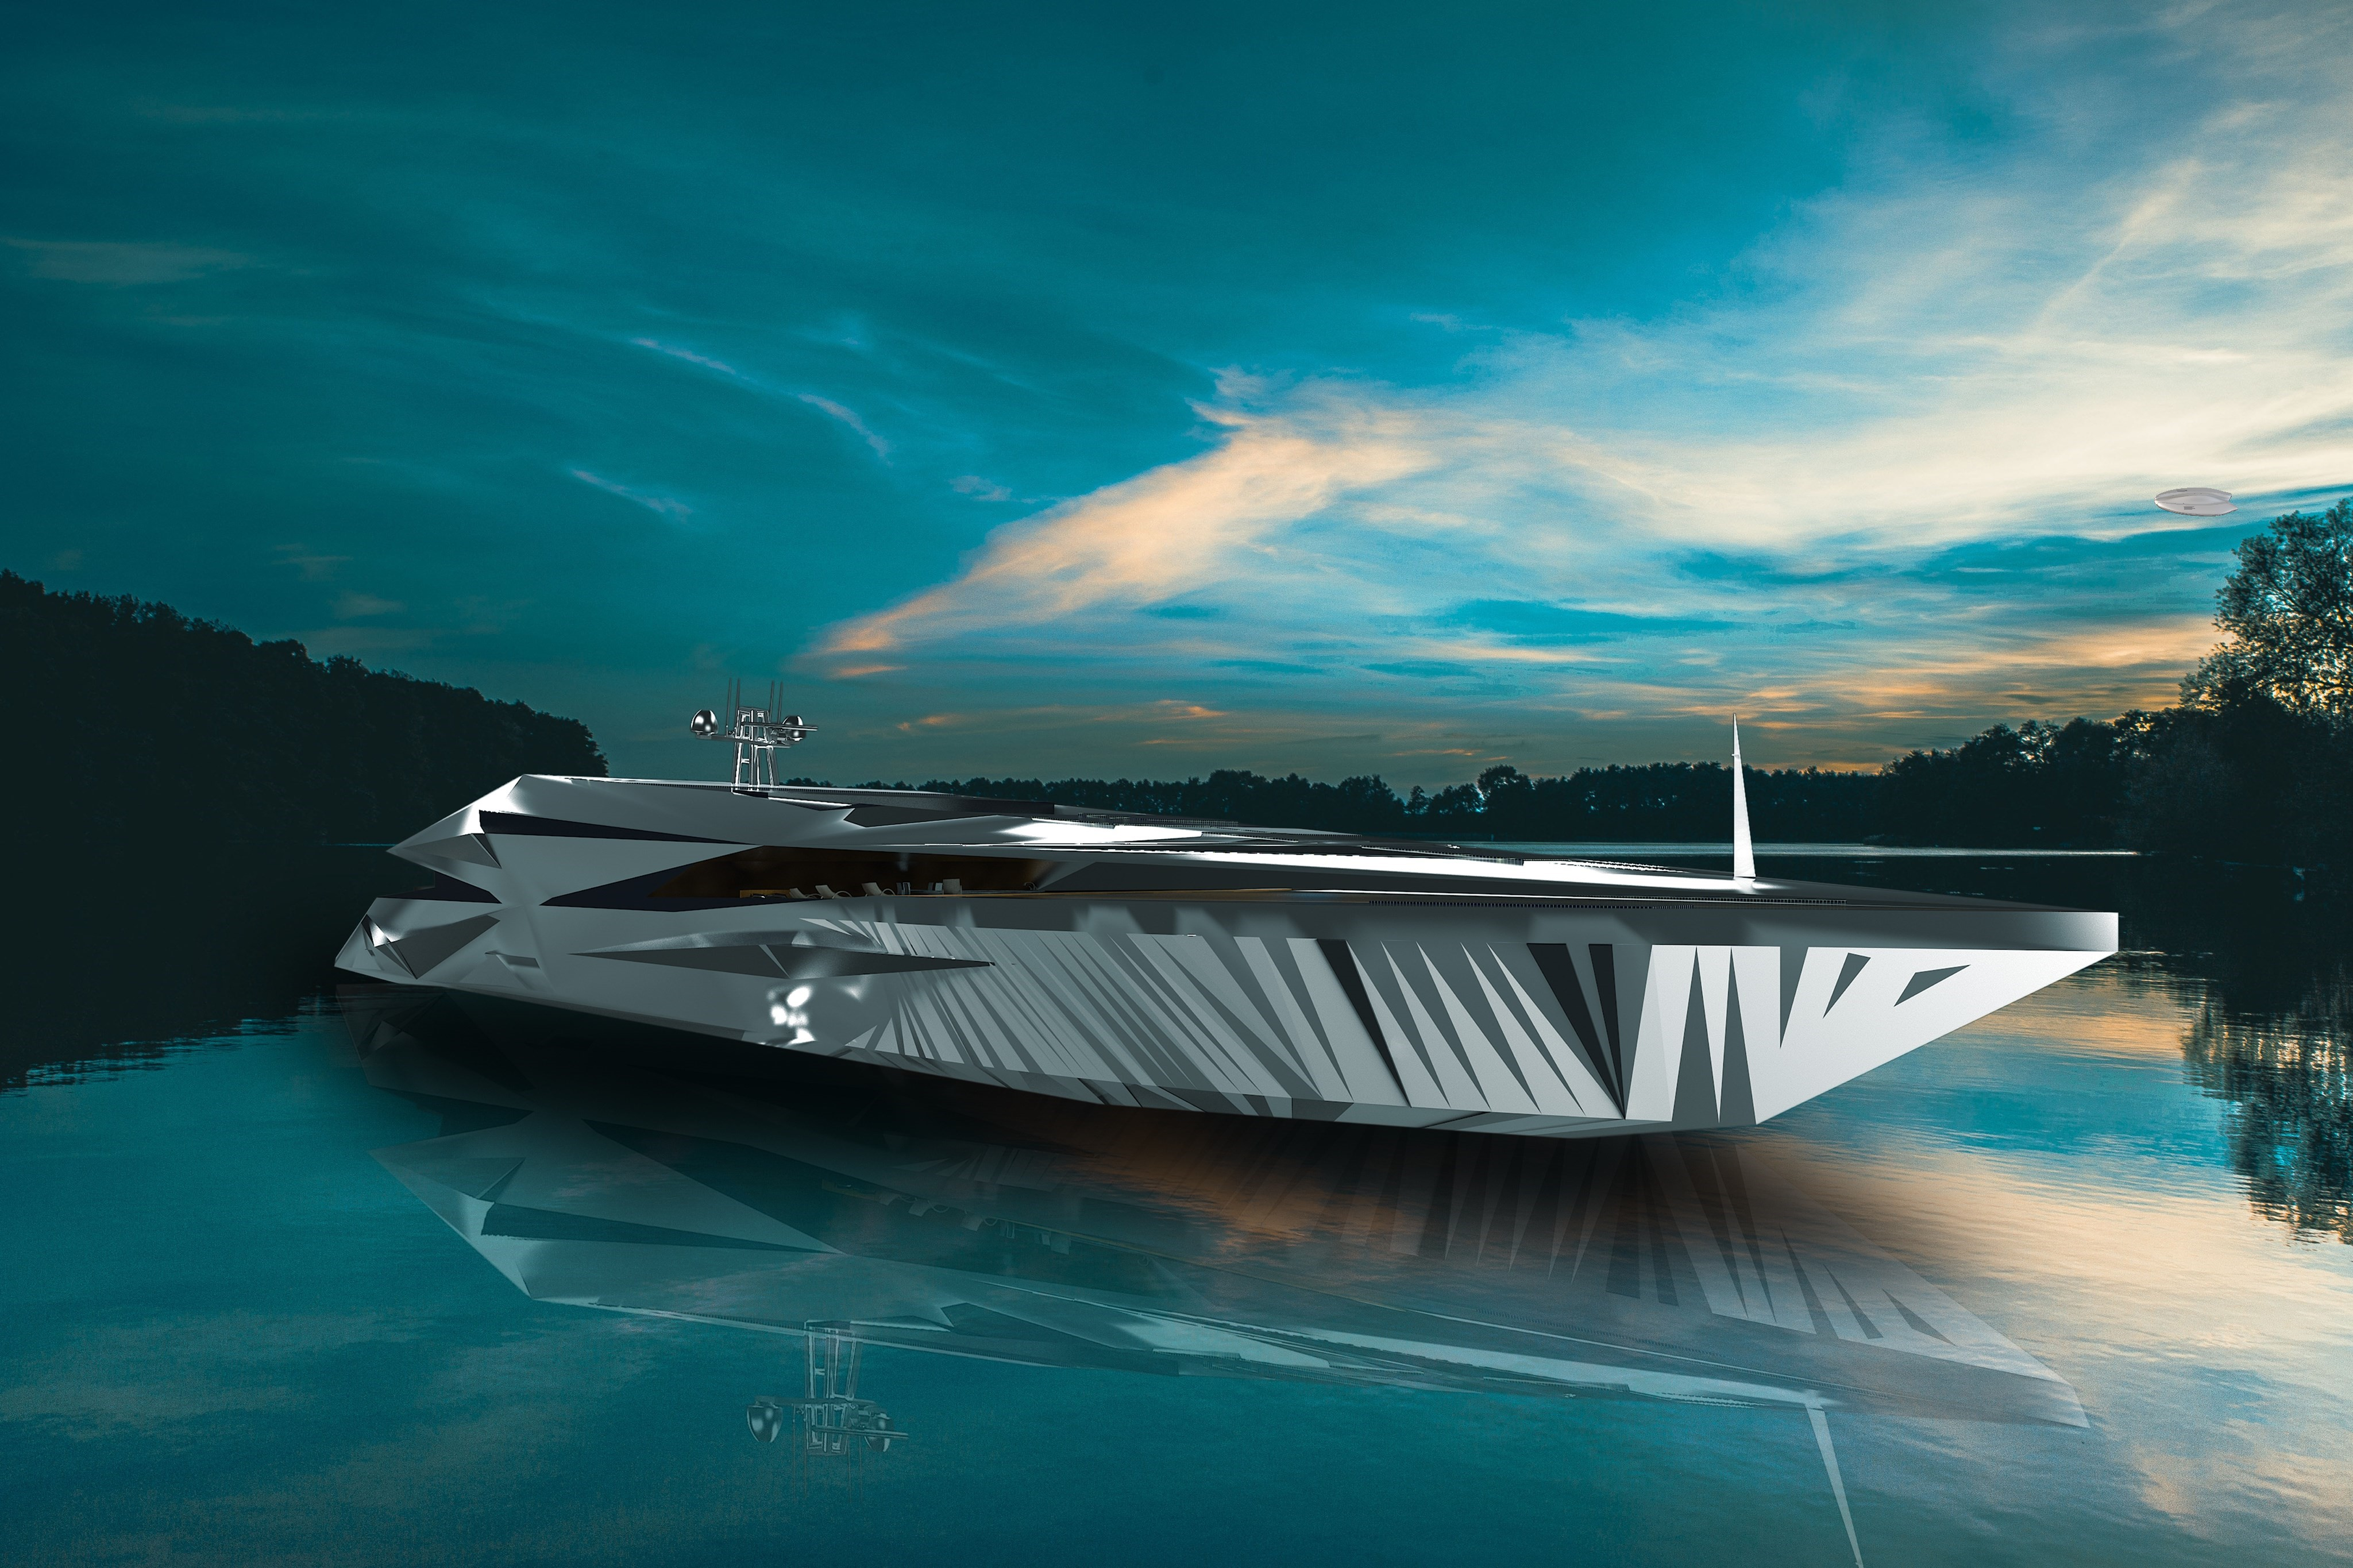 Check out This Futuristic Yacht Concept from George Lucian